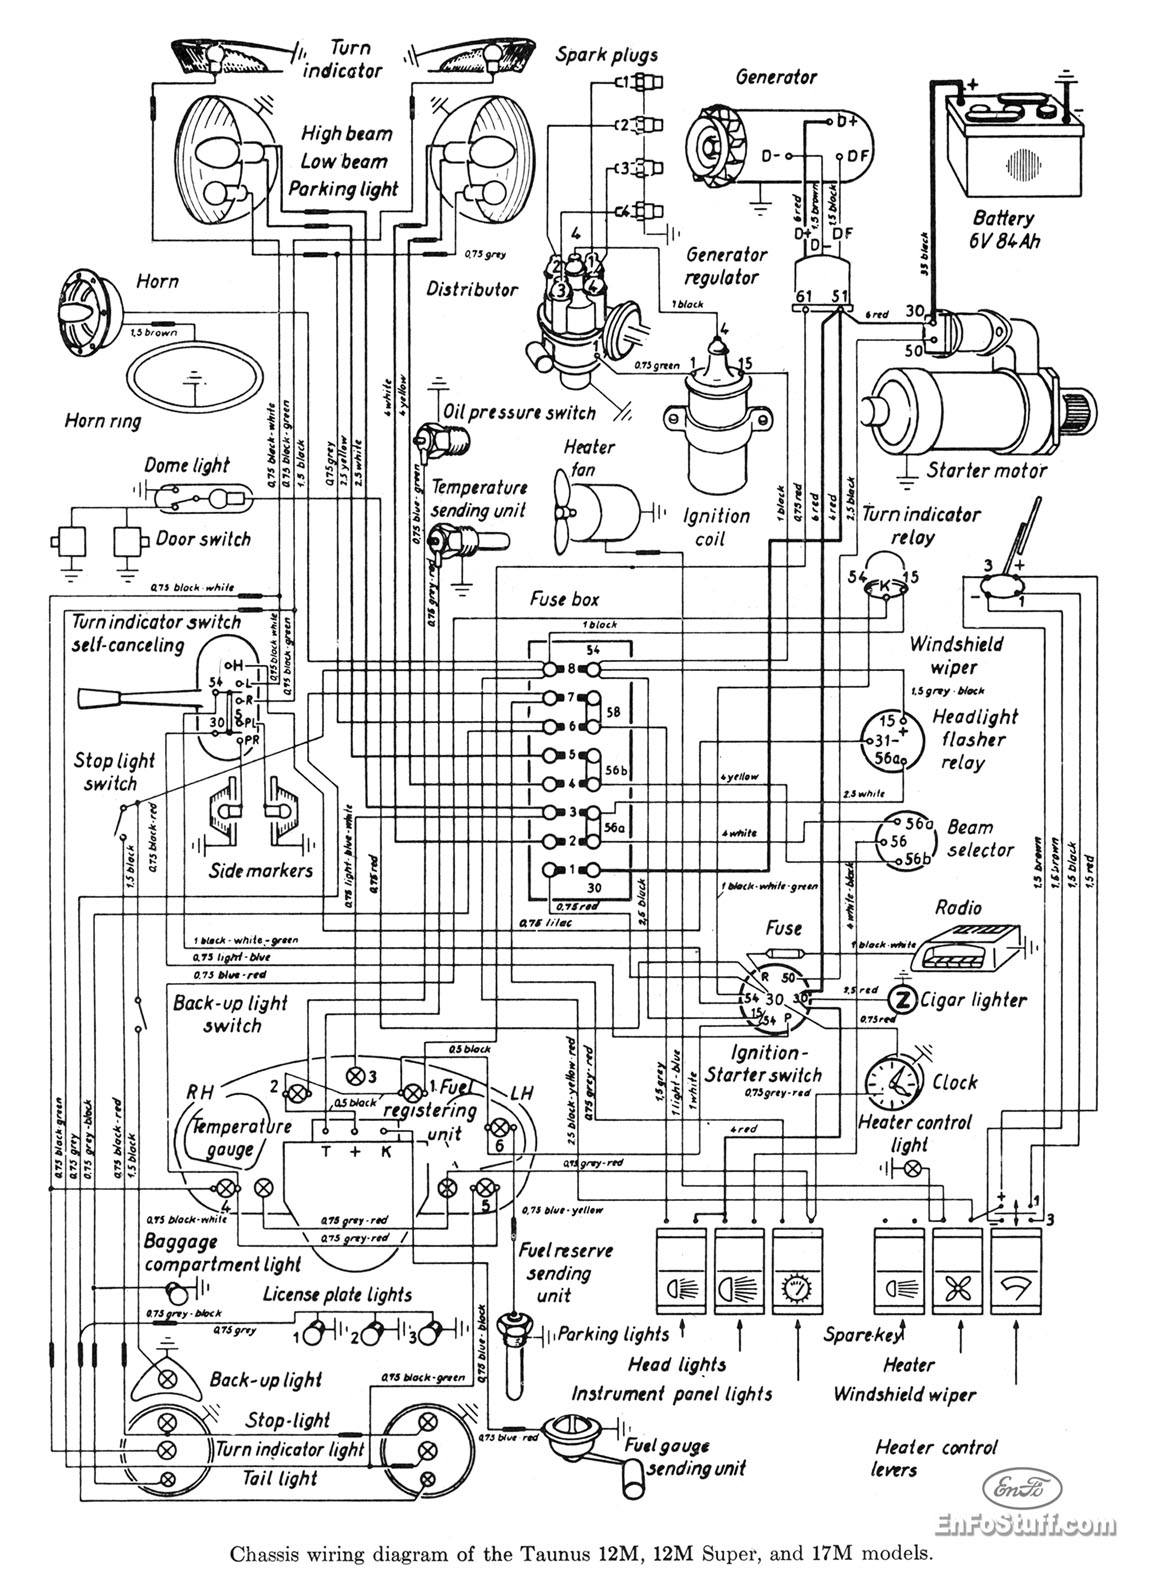 2005 Toyota Sienna Wiring Diagram Pdf Collection